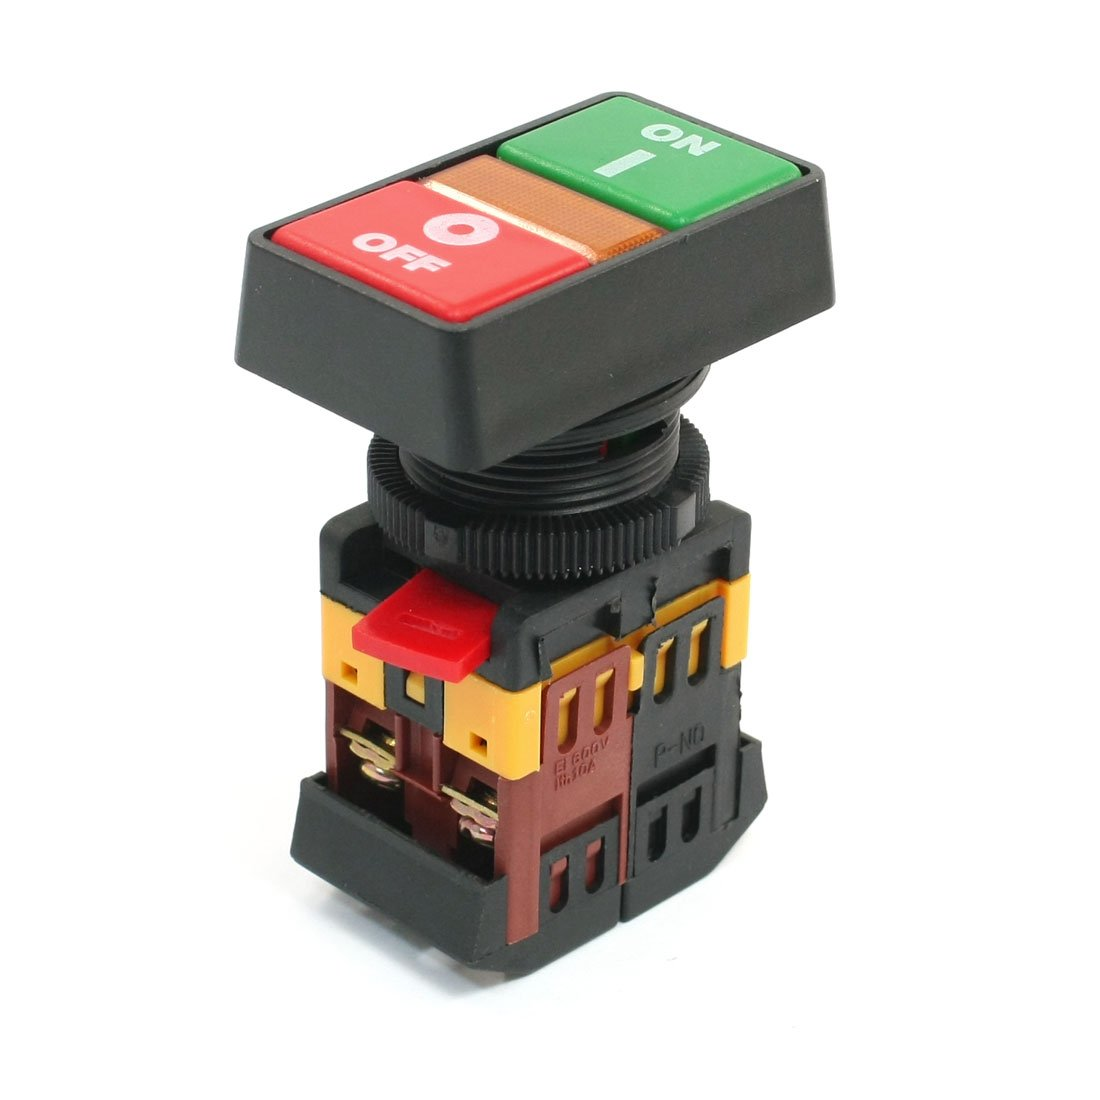 Momentary On Off Start Stop Flush Mounted Pushbutton Switch AC600V 10A Sourcingmap a13112600ux0157